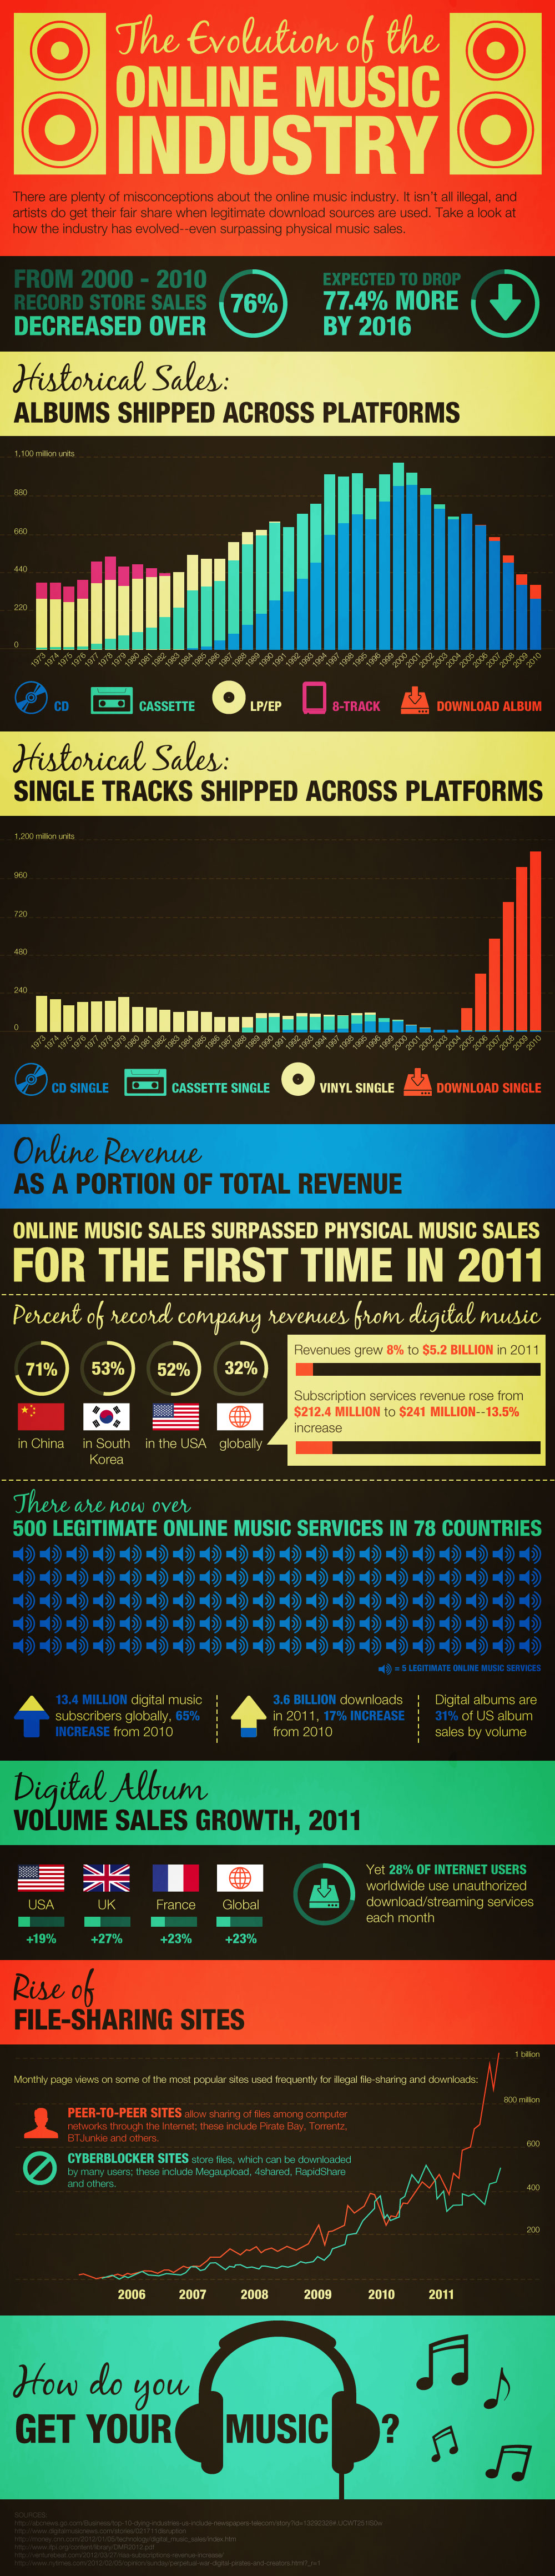 Online Music Sales  History-Infographic